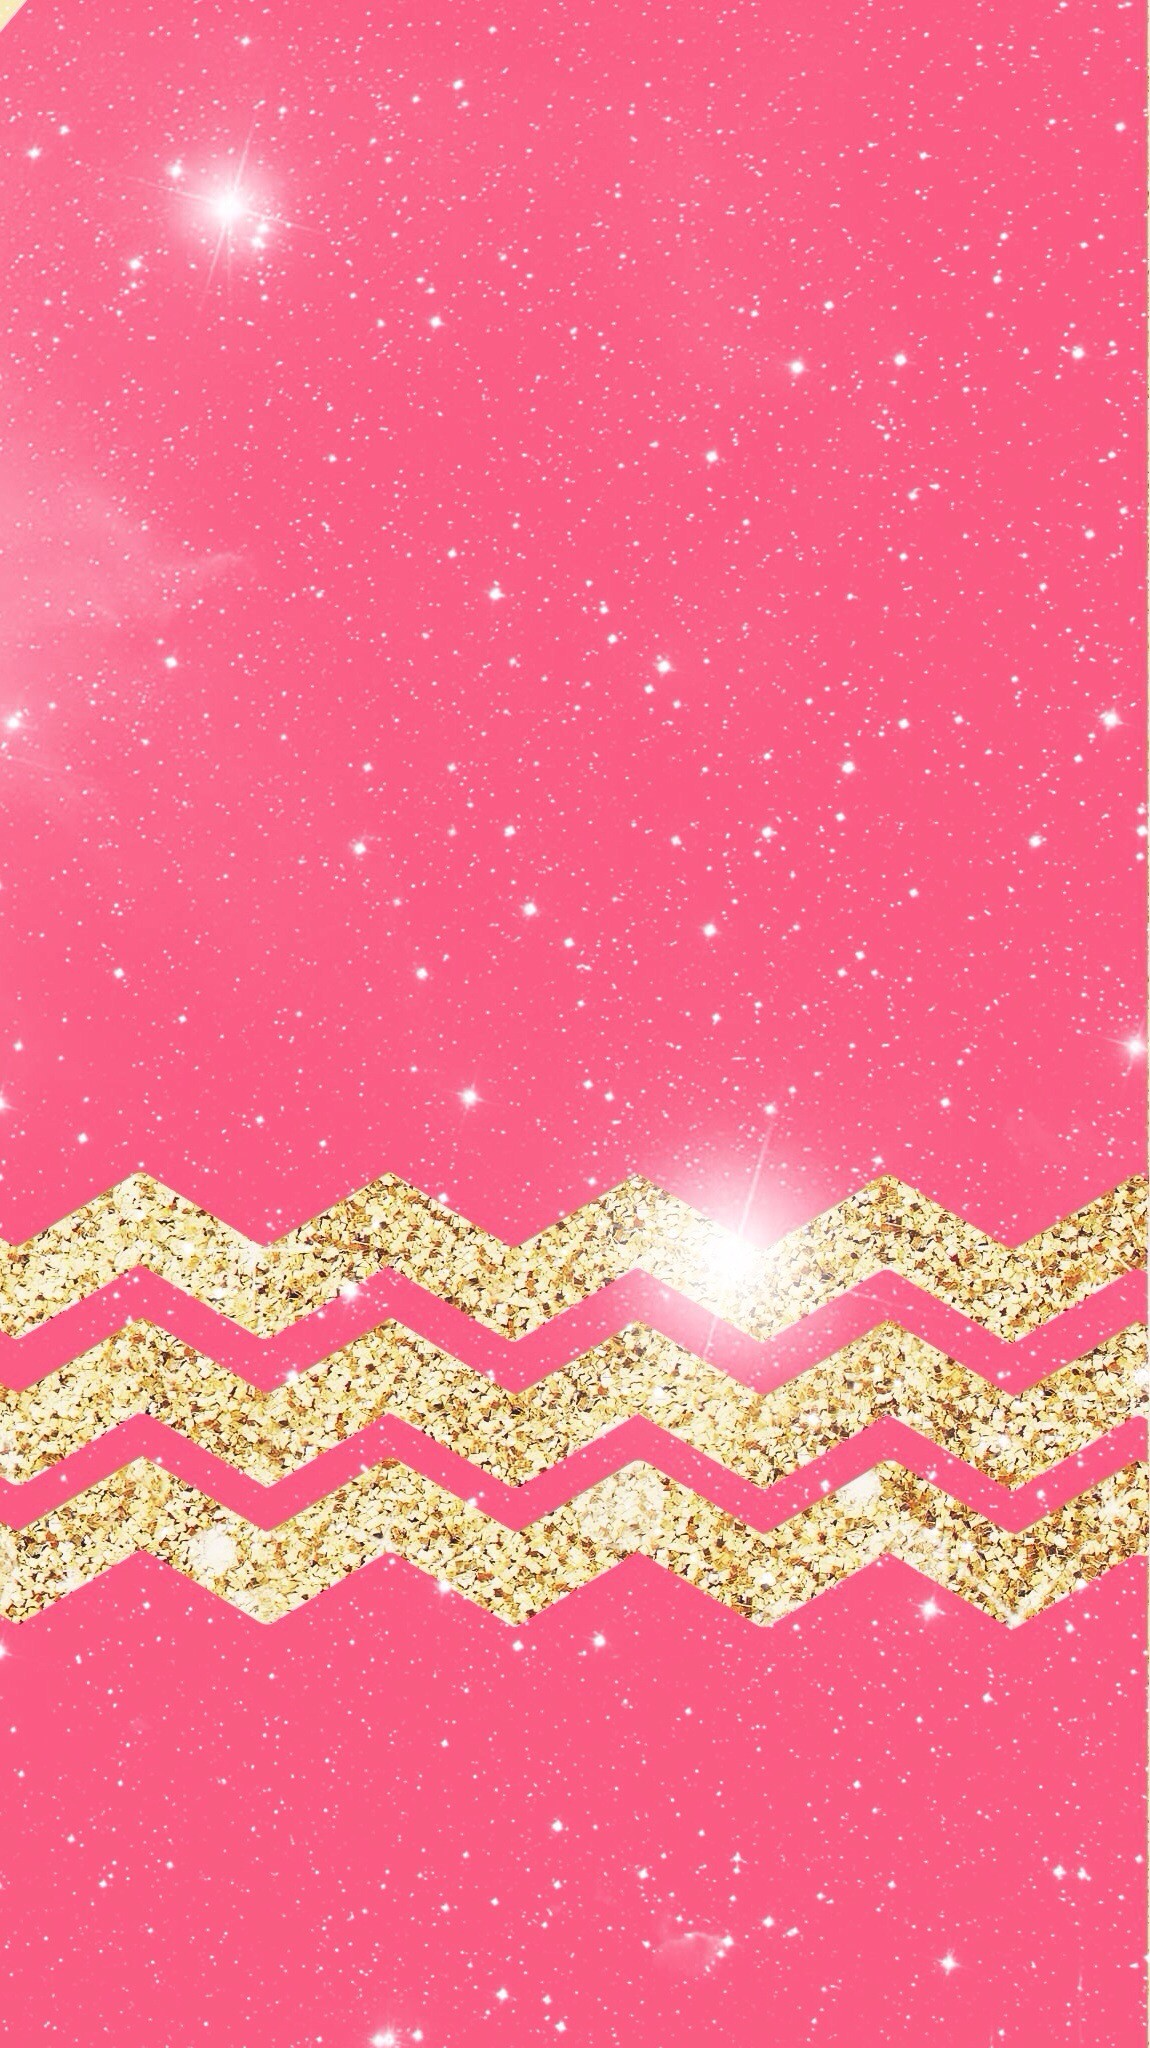 Pink And Gold Bathroom Decor: Pink And Gold Background ·① Download Free Cool Backgrounds